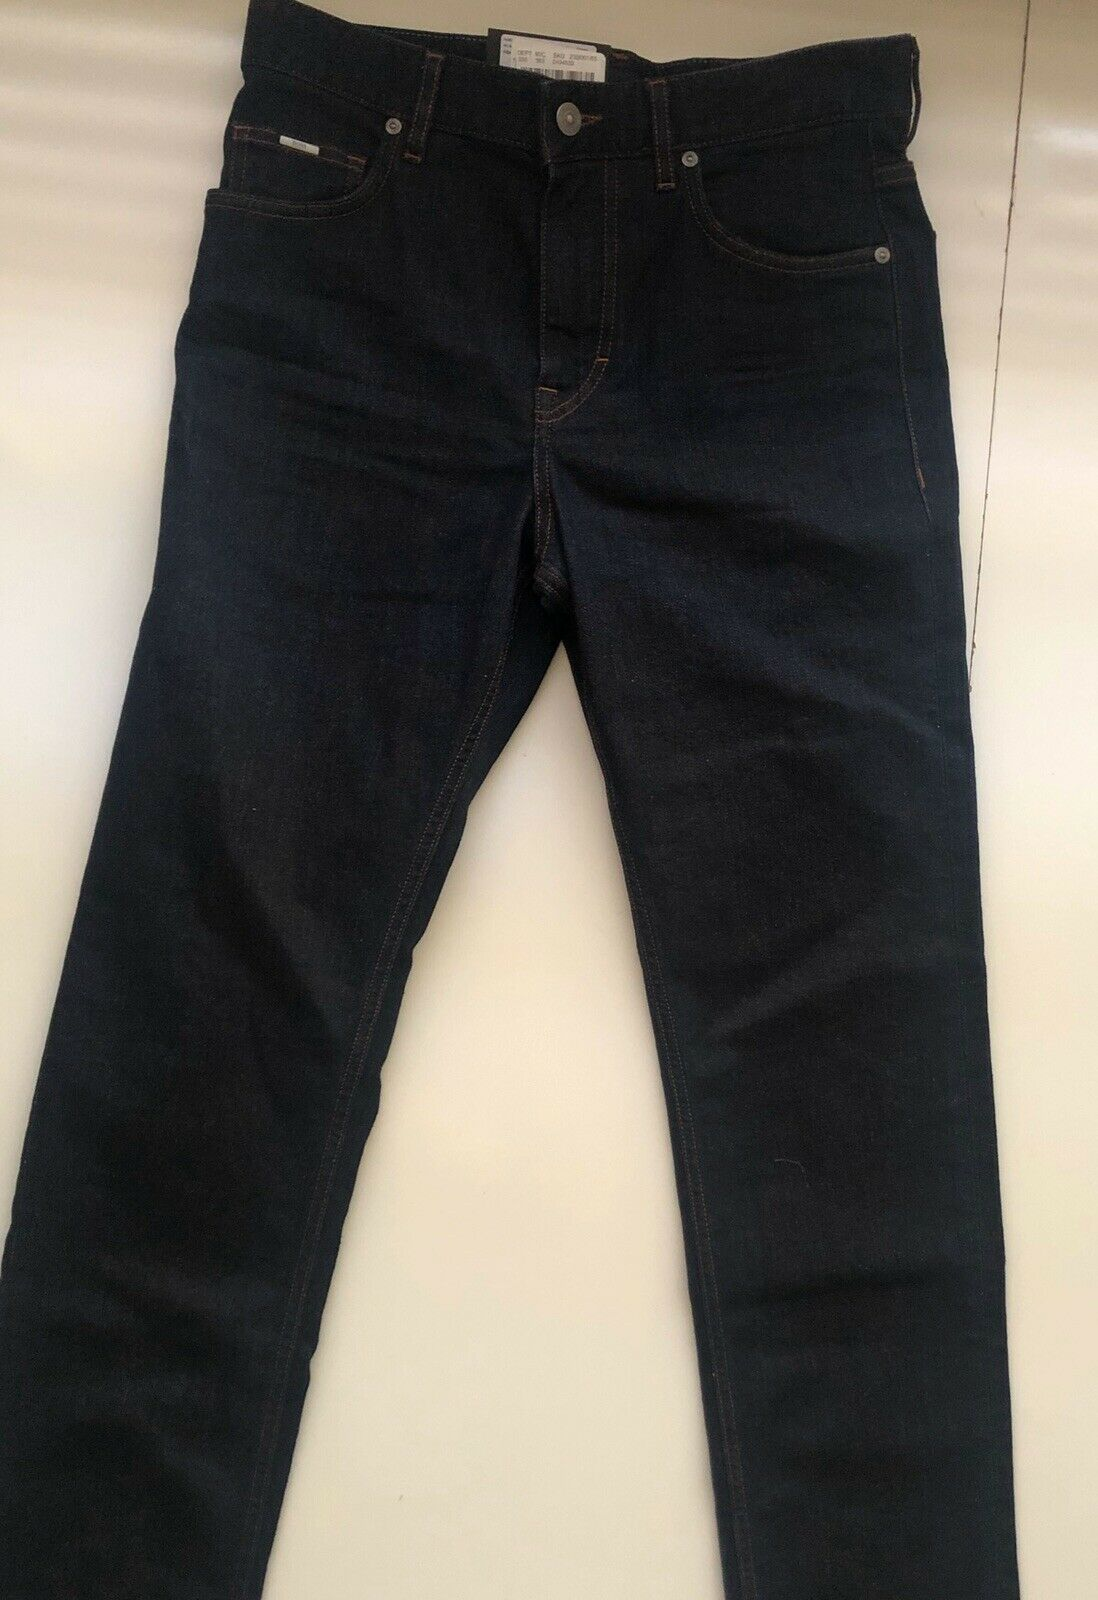 NWT $155 Hugo Boss Men's Albany Relaxed Fit Cotton Navy Denim Jeans Size 30/32